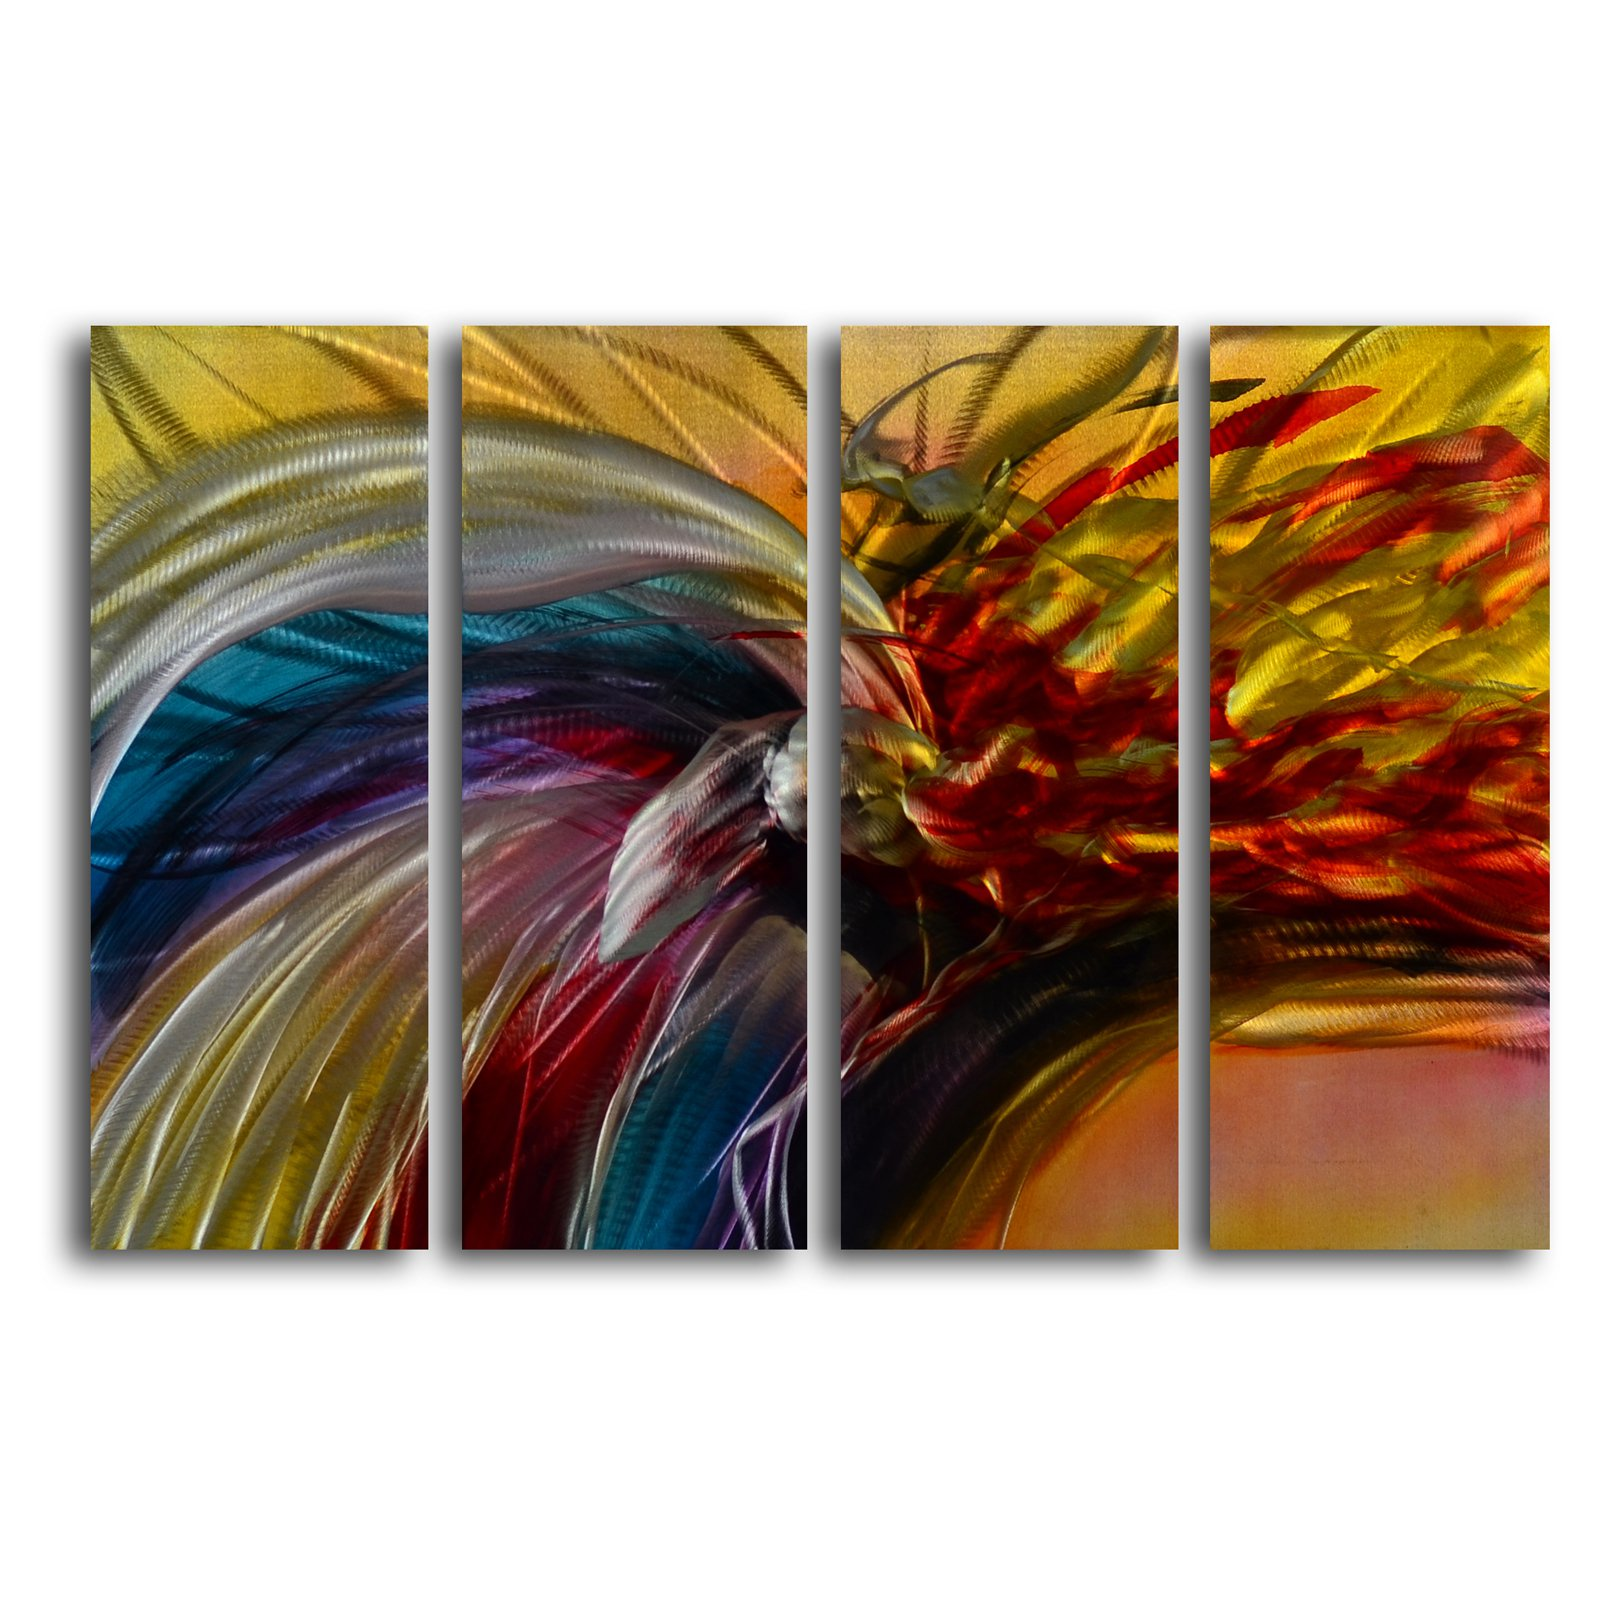 My Art Outlet 'Phoenix and the Rainbow' 4 Piece Graphic Art Plaque Set